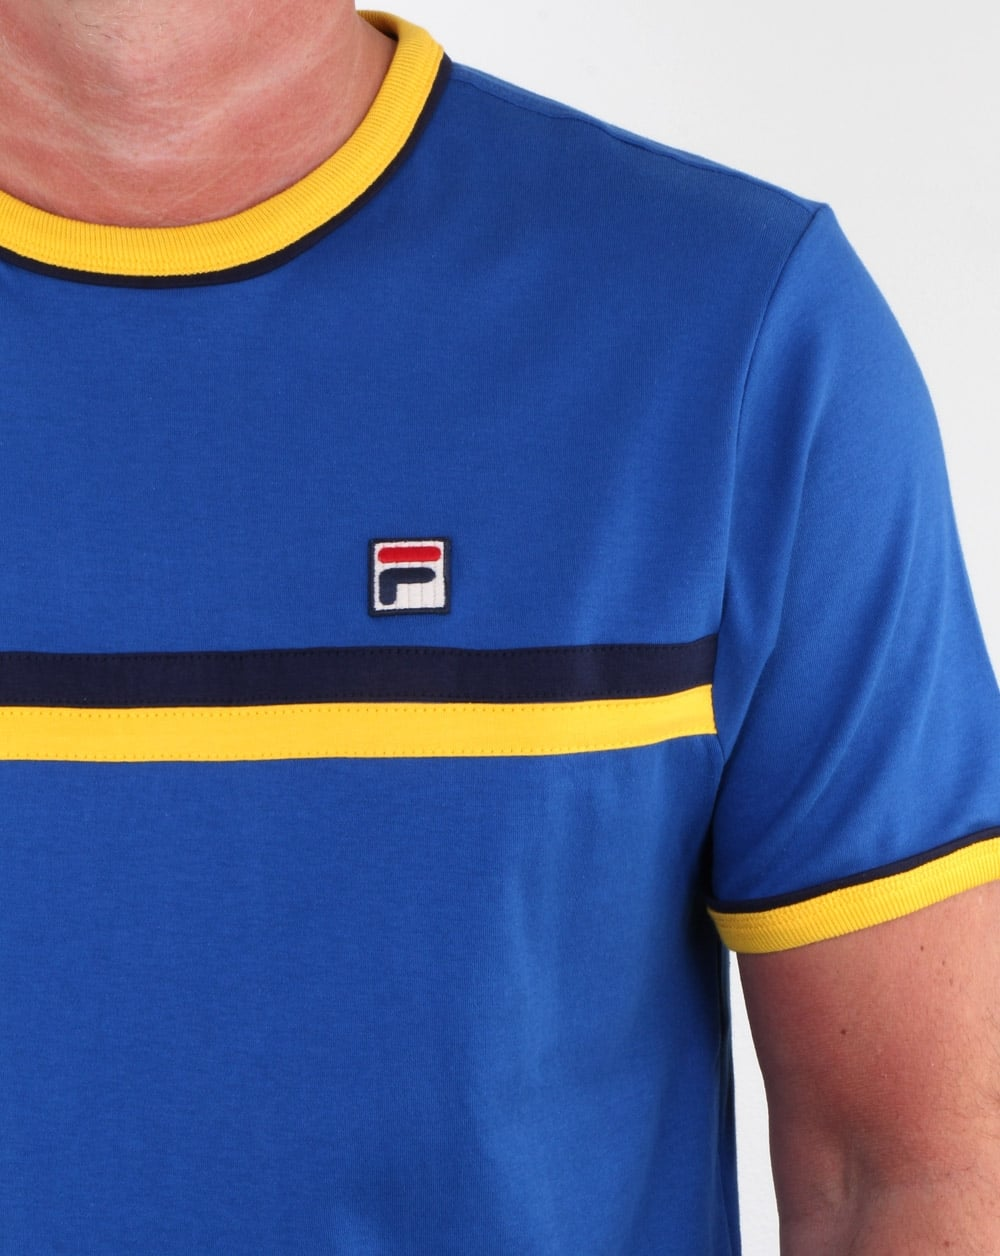 Fila Vintage T Shirt in Blue, Yellow